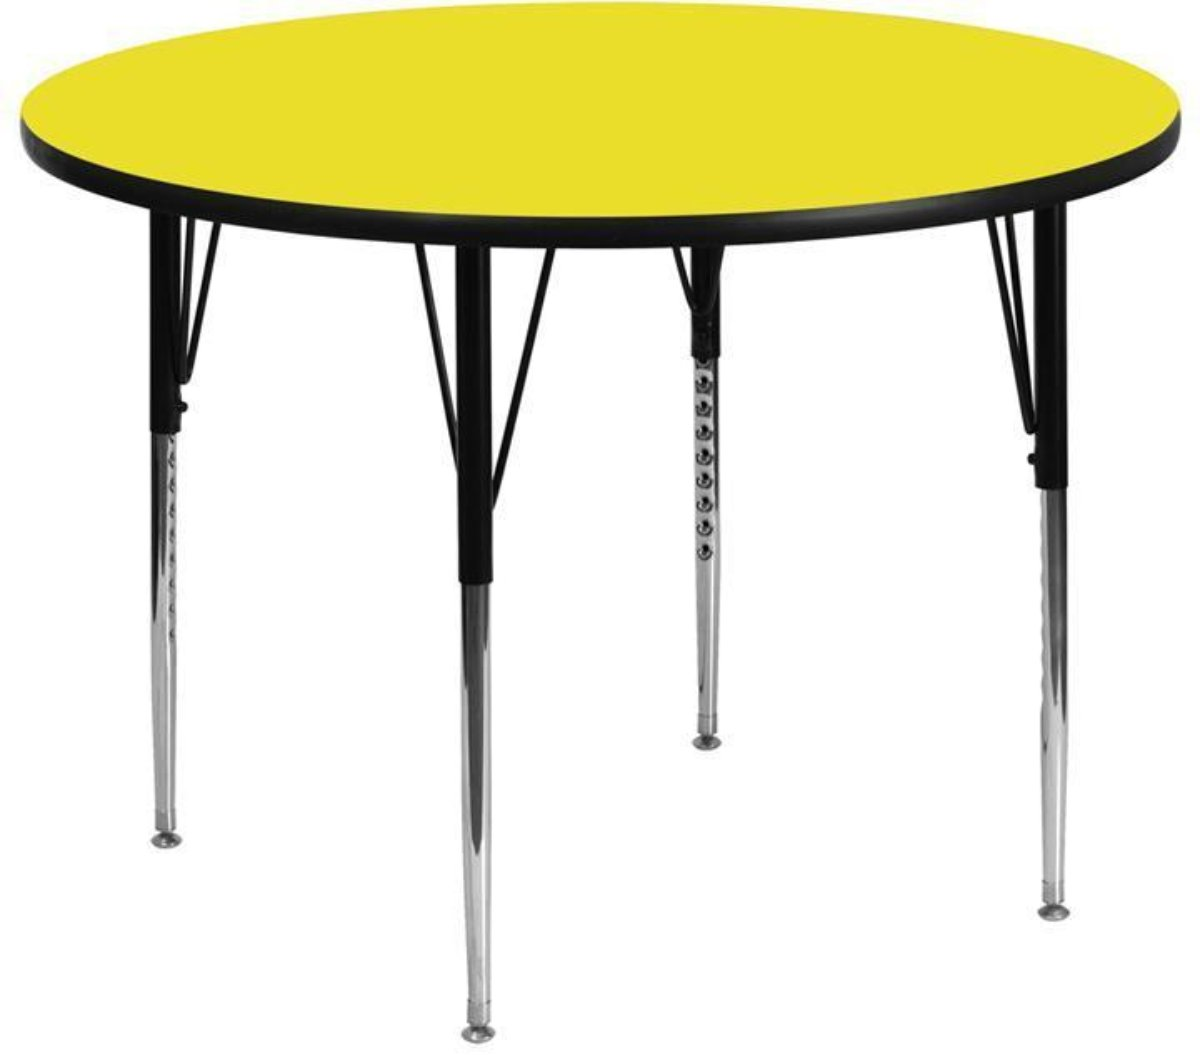 48 Round Yellow Hp Laminate Activity Table Standard